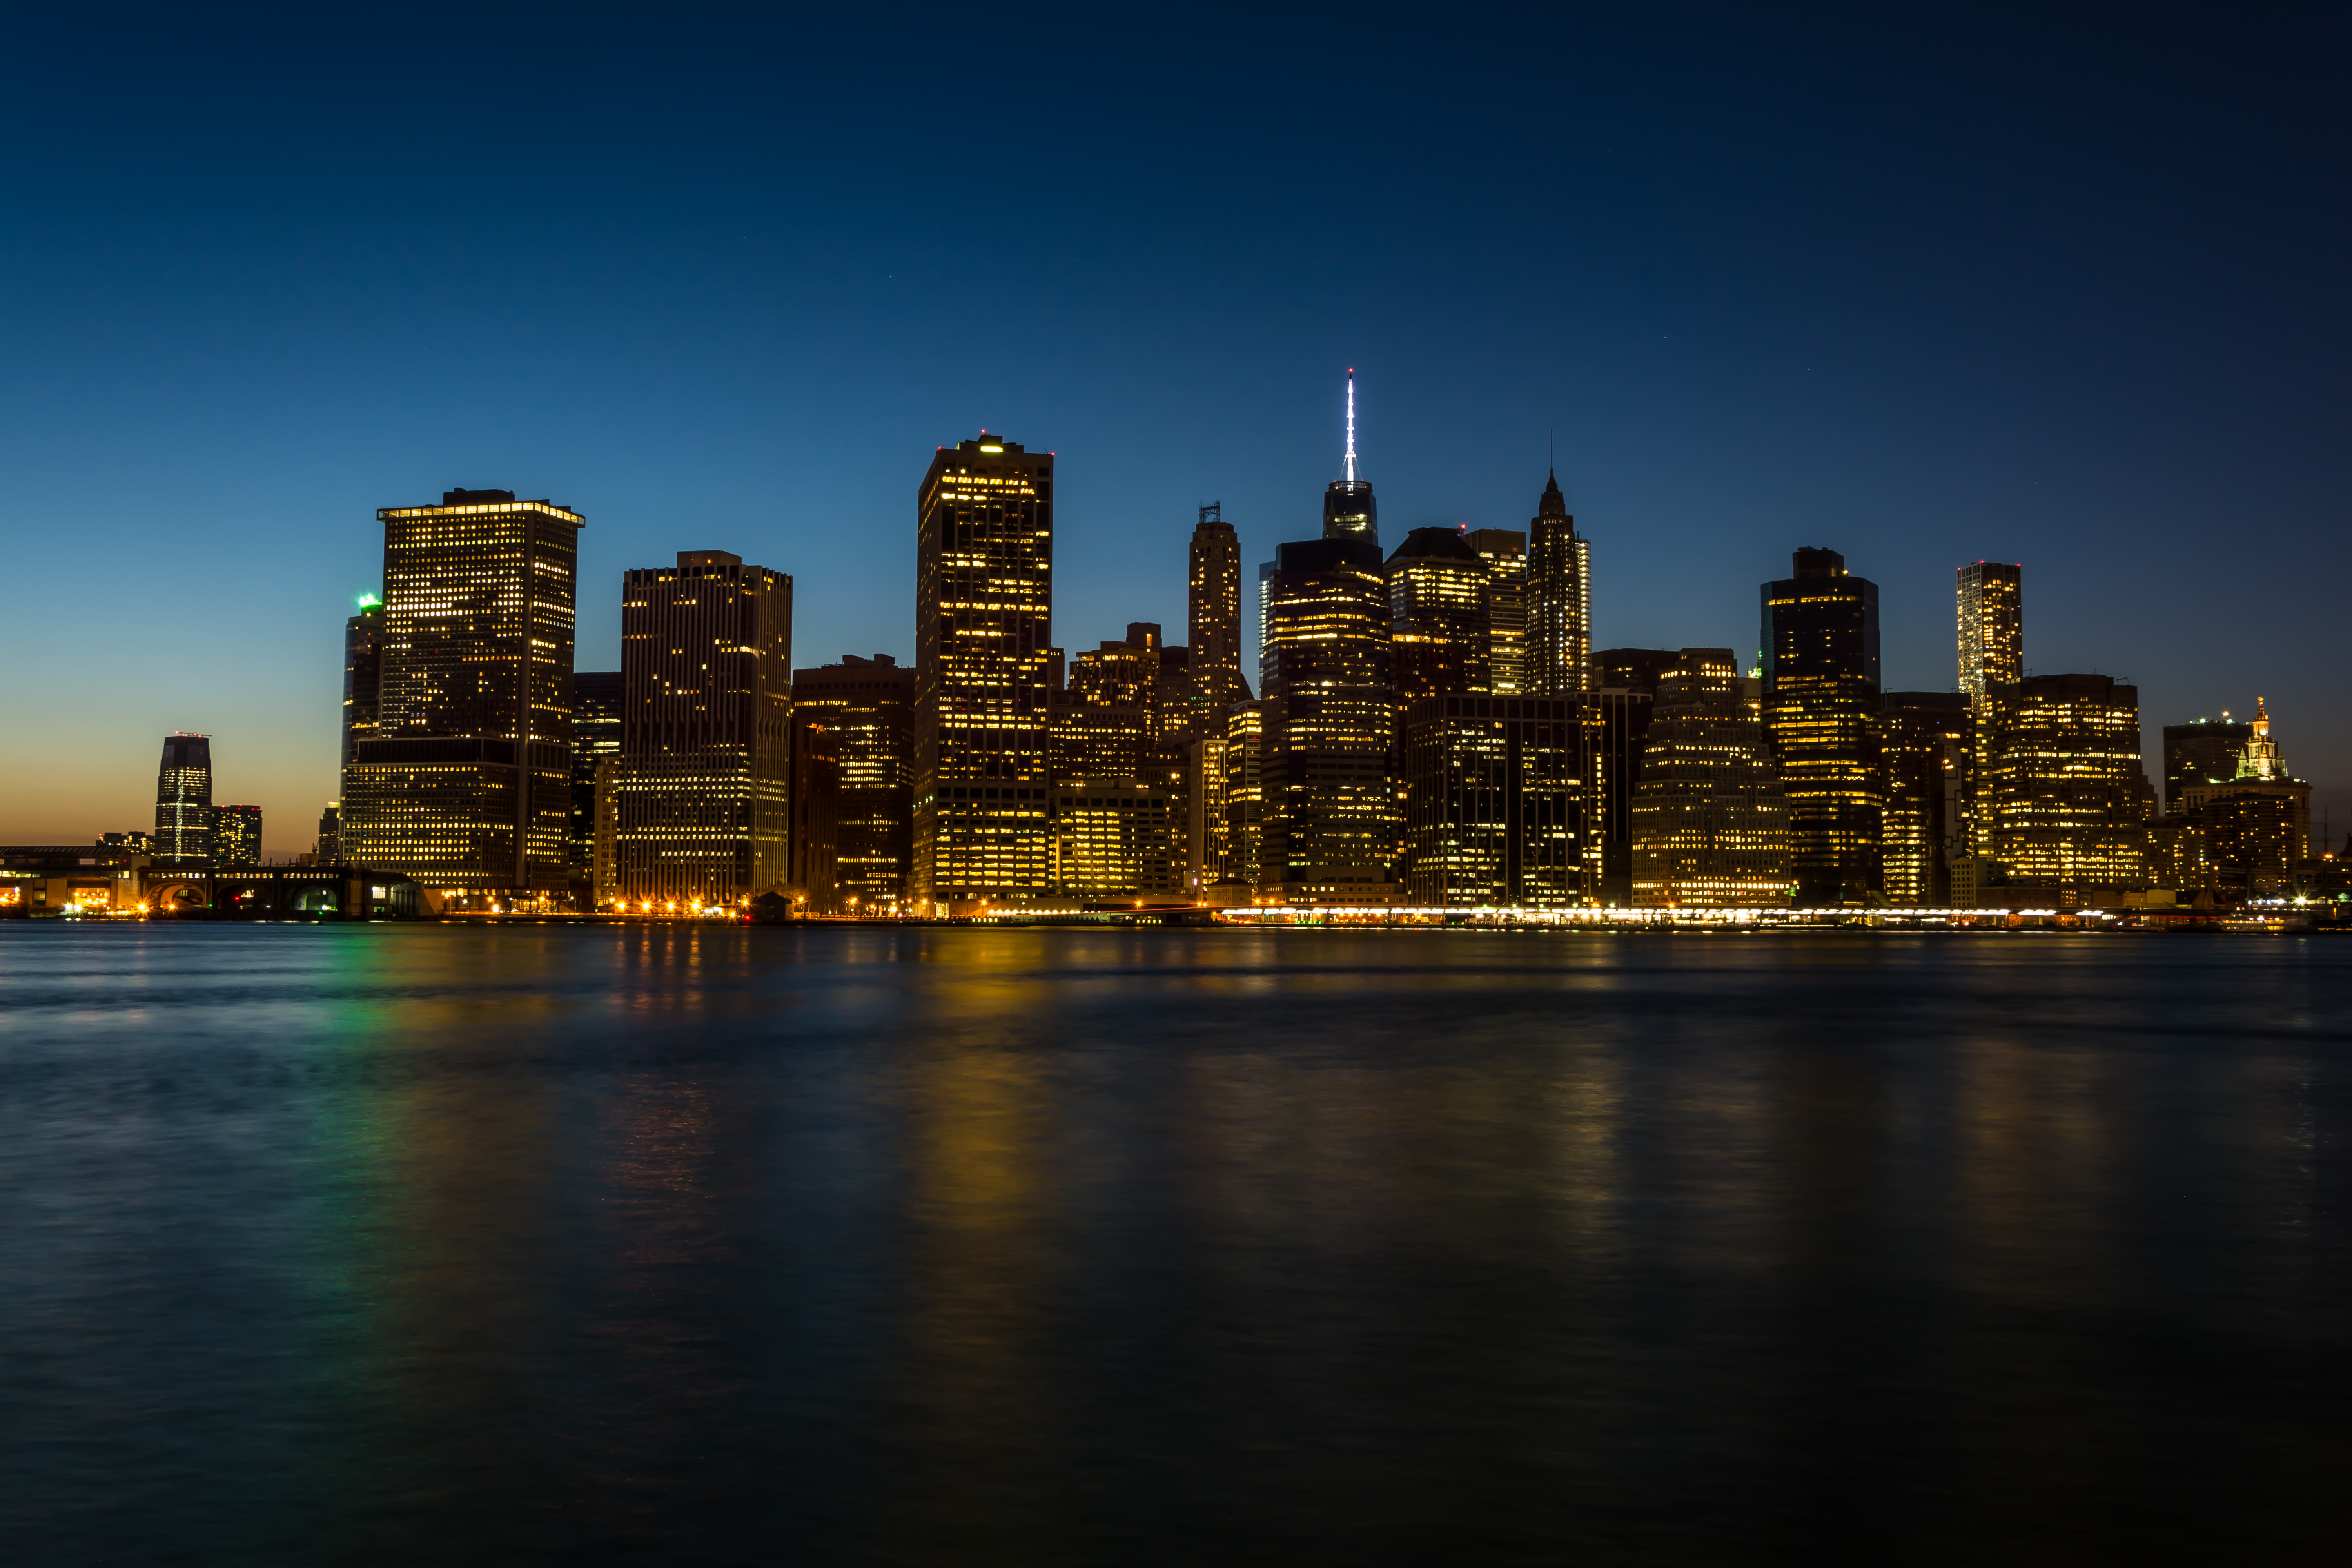 133080 download wallpaper Architecture, Cities, City, Building, Coast, New York, Manhattan screensavers and pictures for free